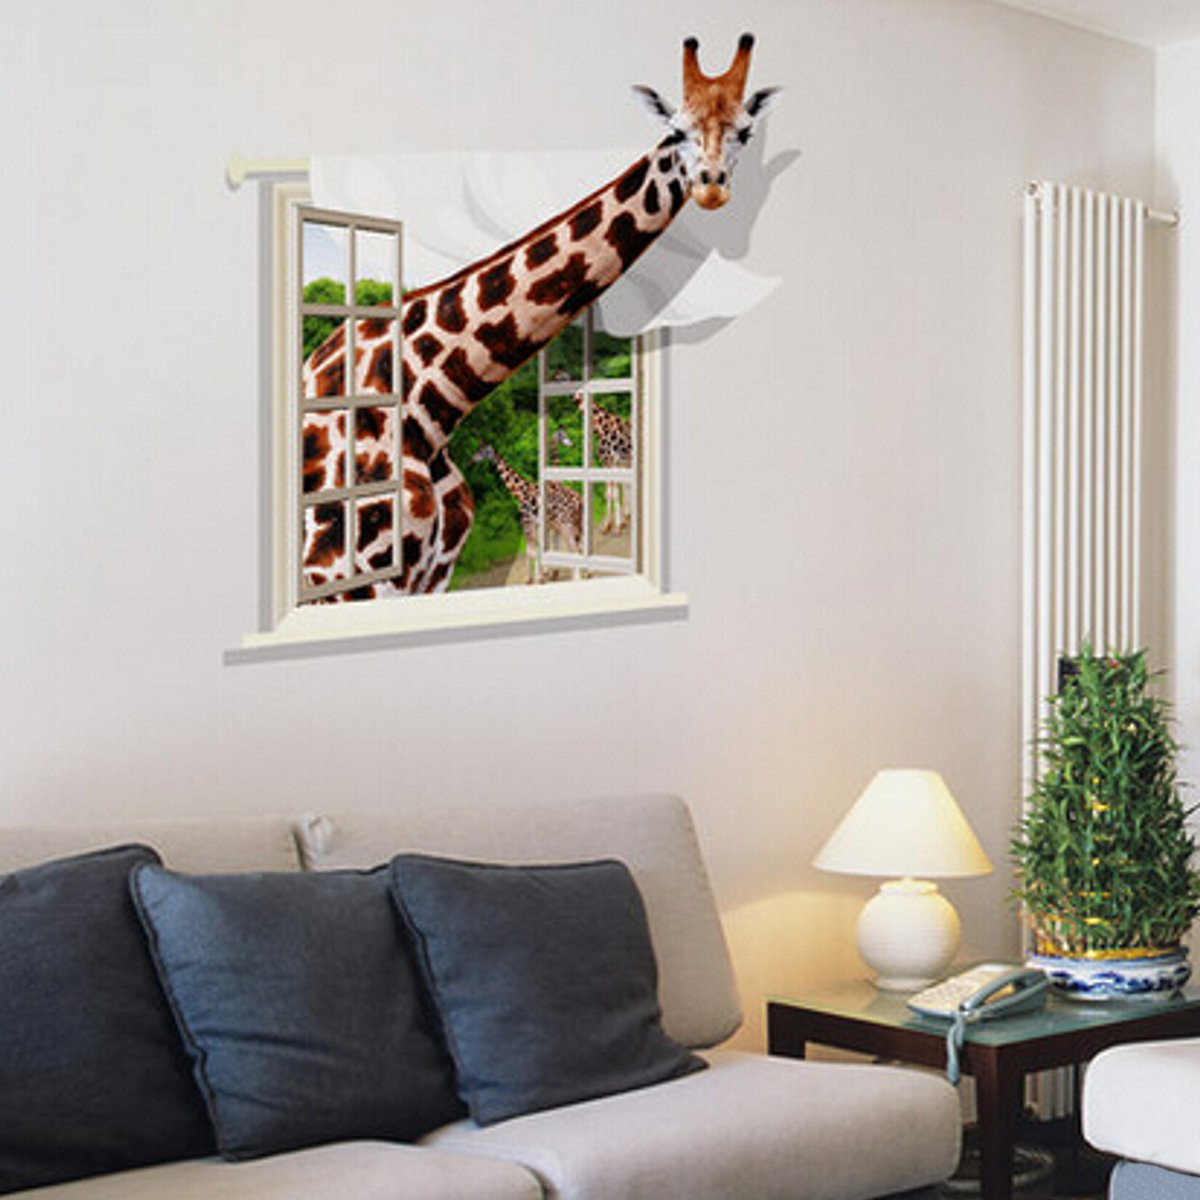 Best ideas about Wall Decals For Living Room . Save or Pin 3D Lovely Giraffe Wall Sticker Decal Animal Wallpaper Now.